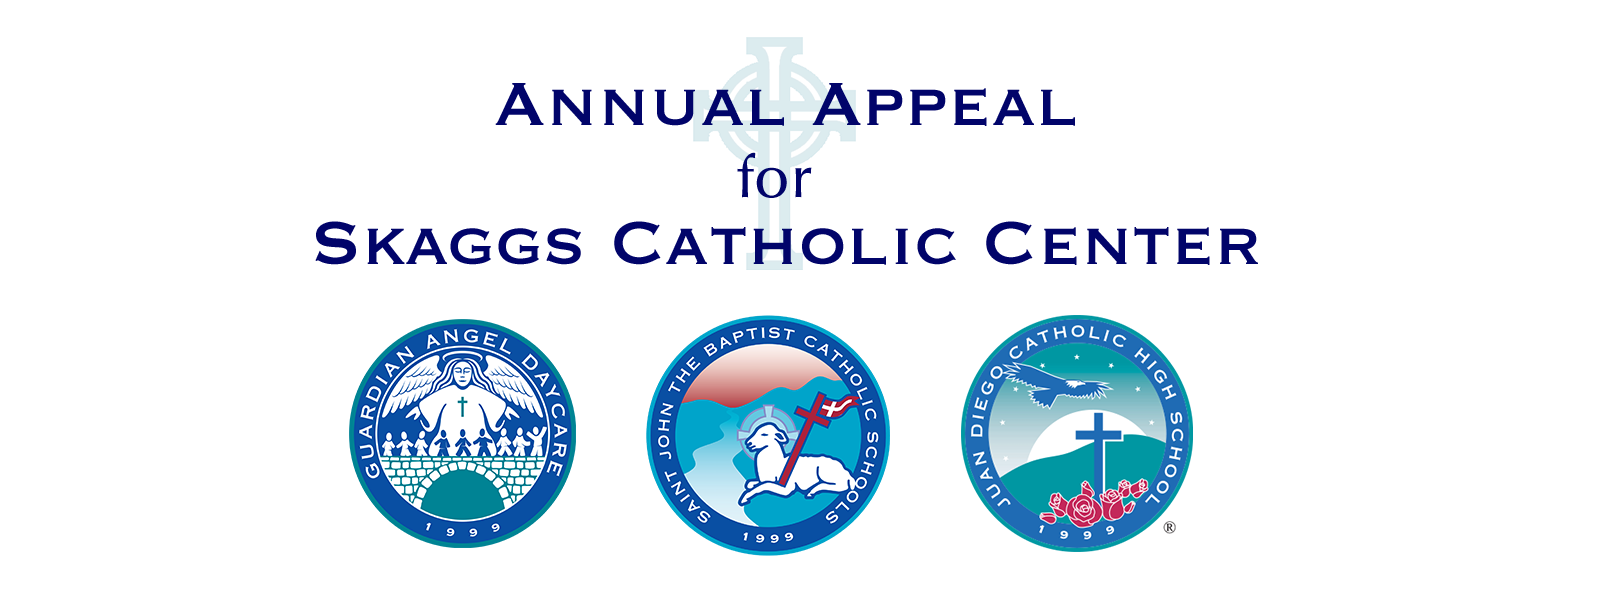 annualappeal.skaggscatholiccenter.org